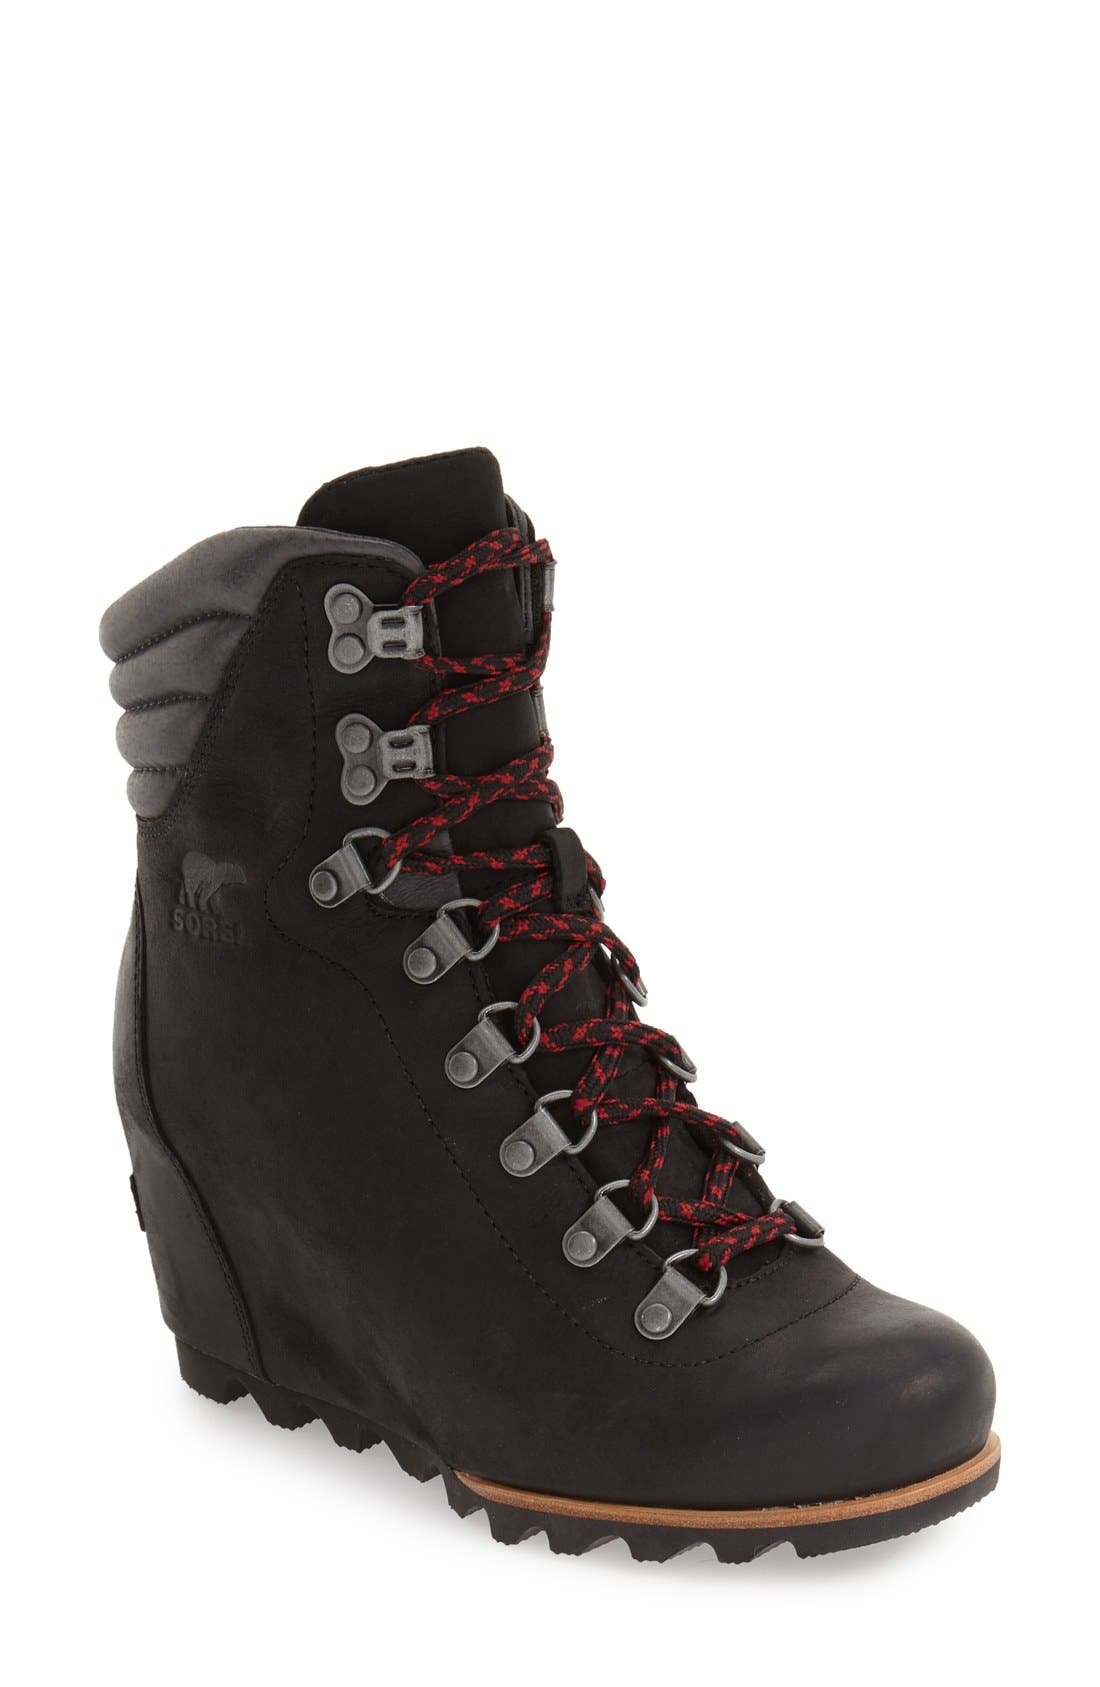 'Conquest' Waterproof Wedge Boot,                             Main thumbnail 1, color,